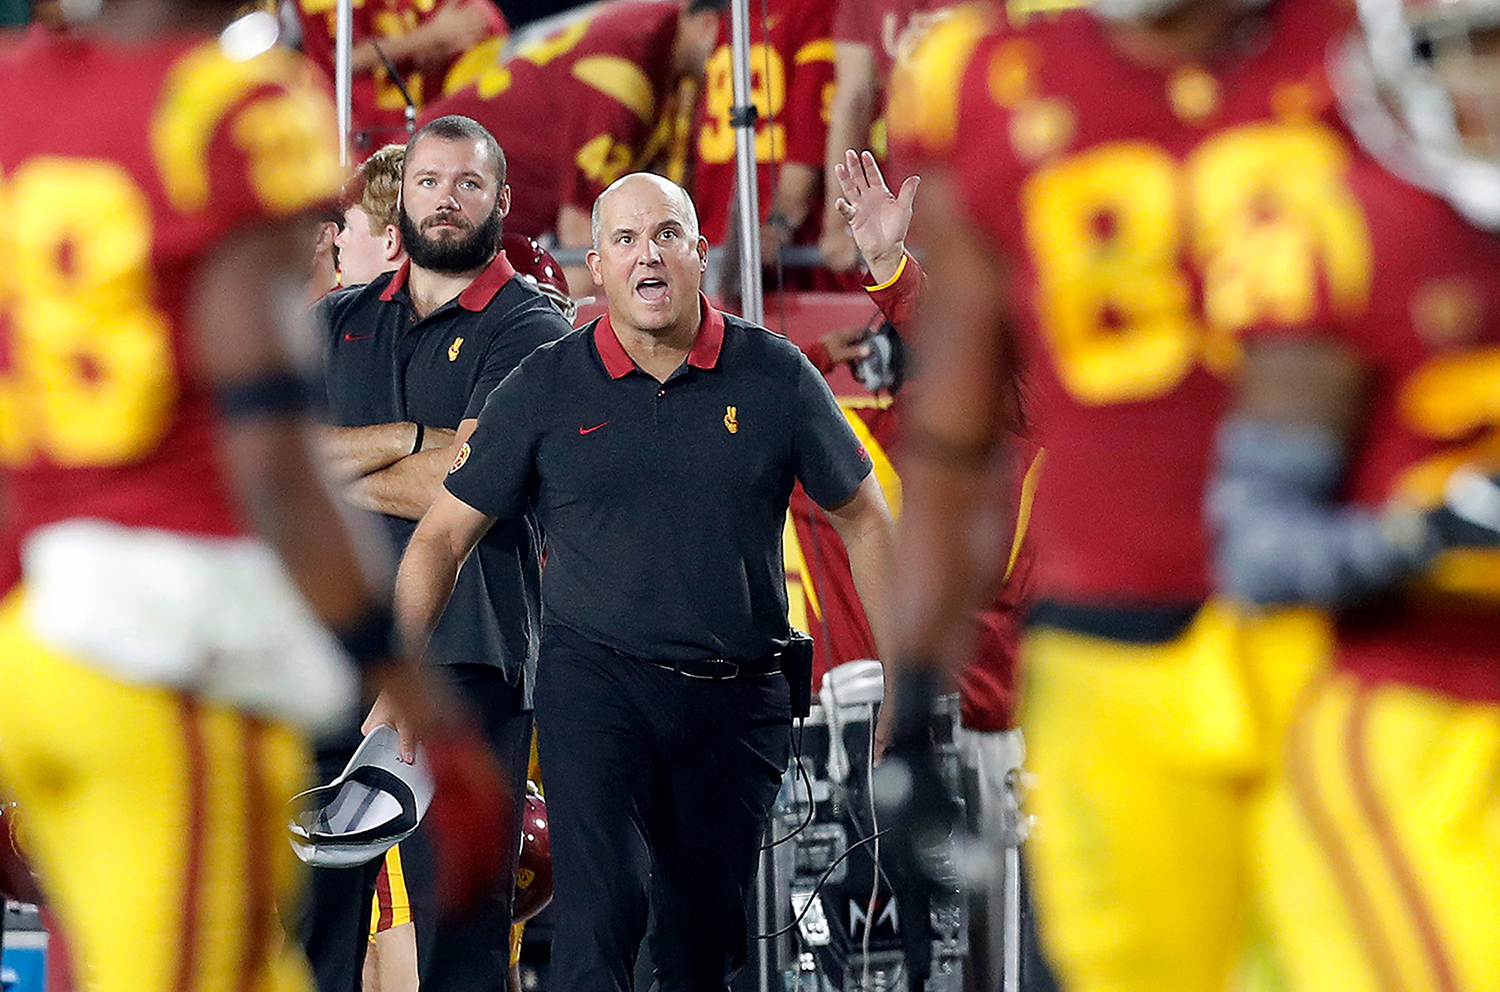 USC head coach Clay Helton reacts after yet another personal fopul call against the Trojans in the second quarter at the Coliseum on Saturday night, Nov,. 2, 2019. USC will face Iowa in the Holiday Bowl. (Luis Sinco/Los Angeles Times/TNS)